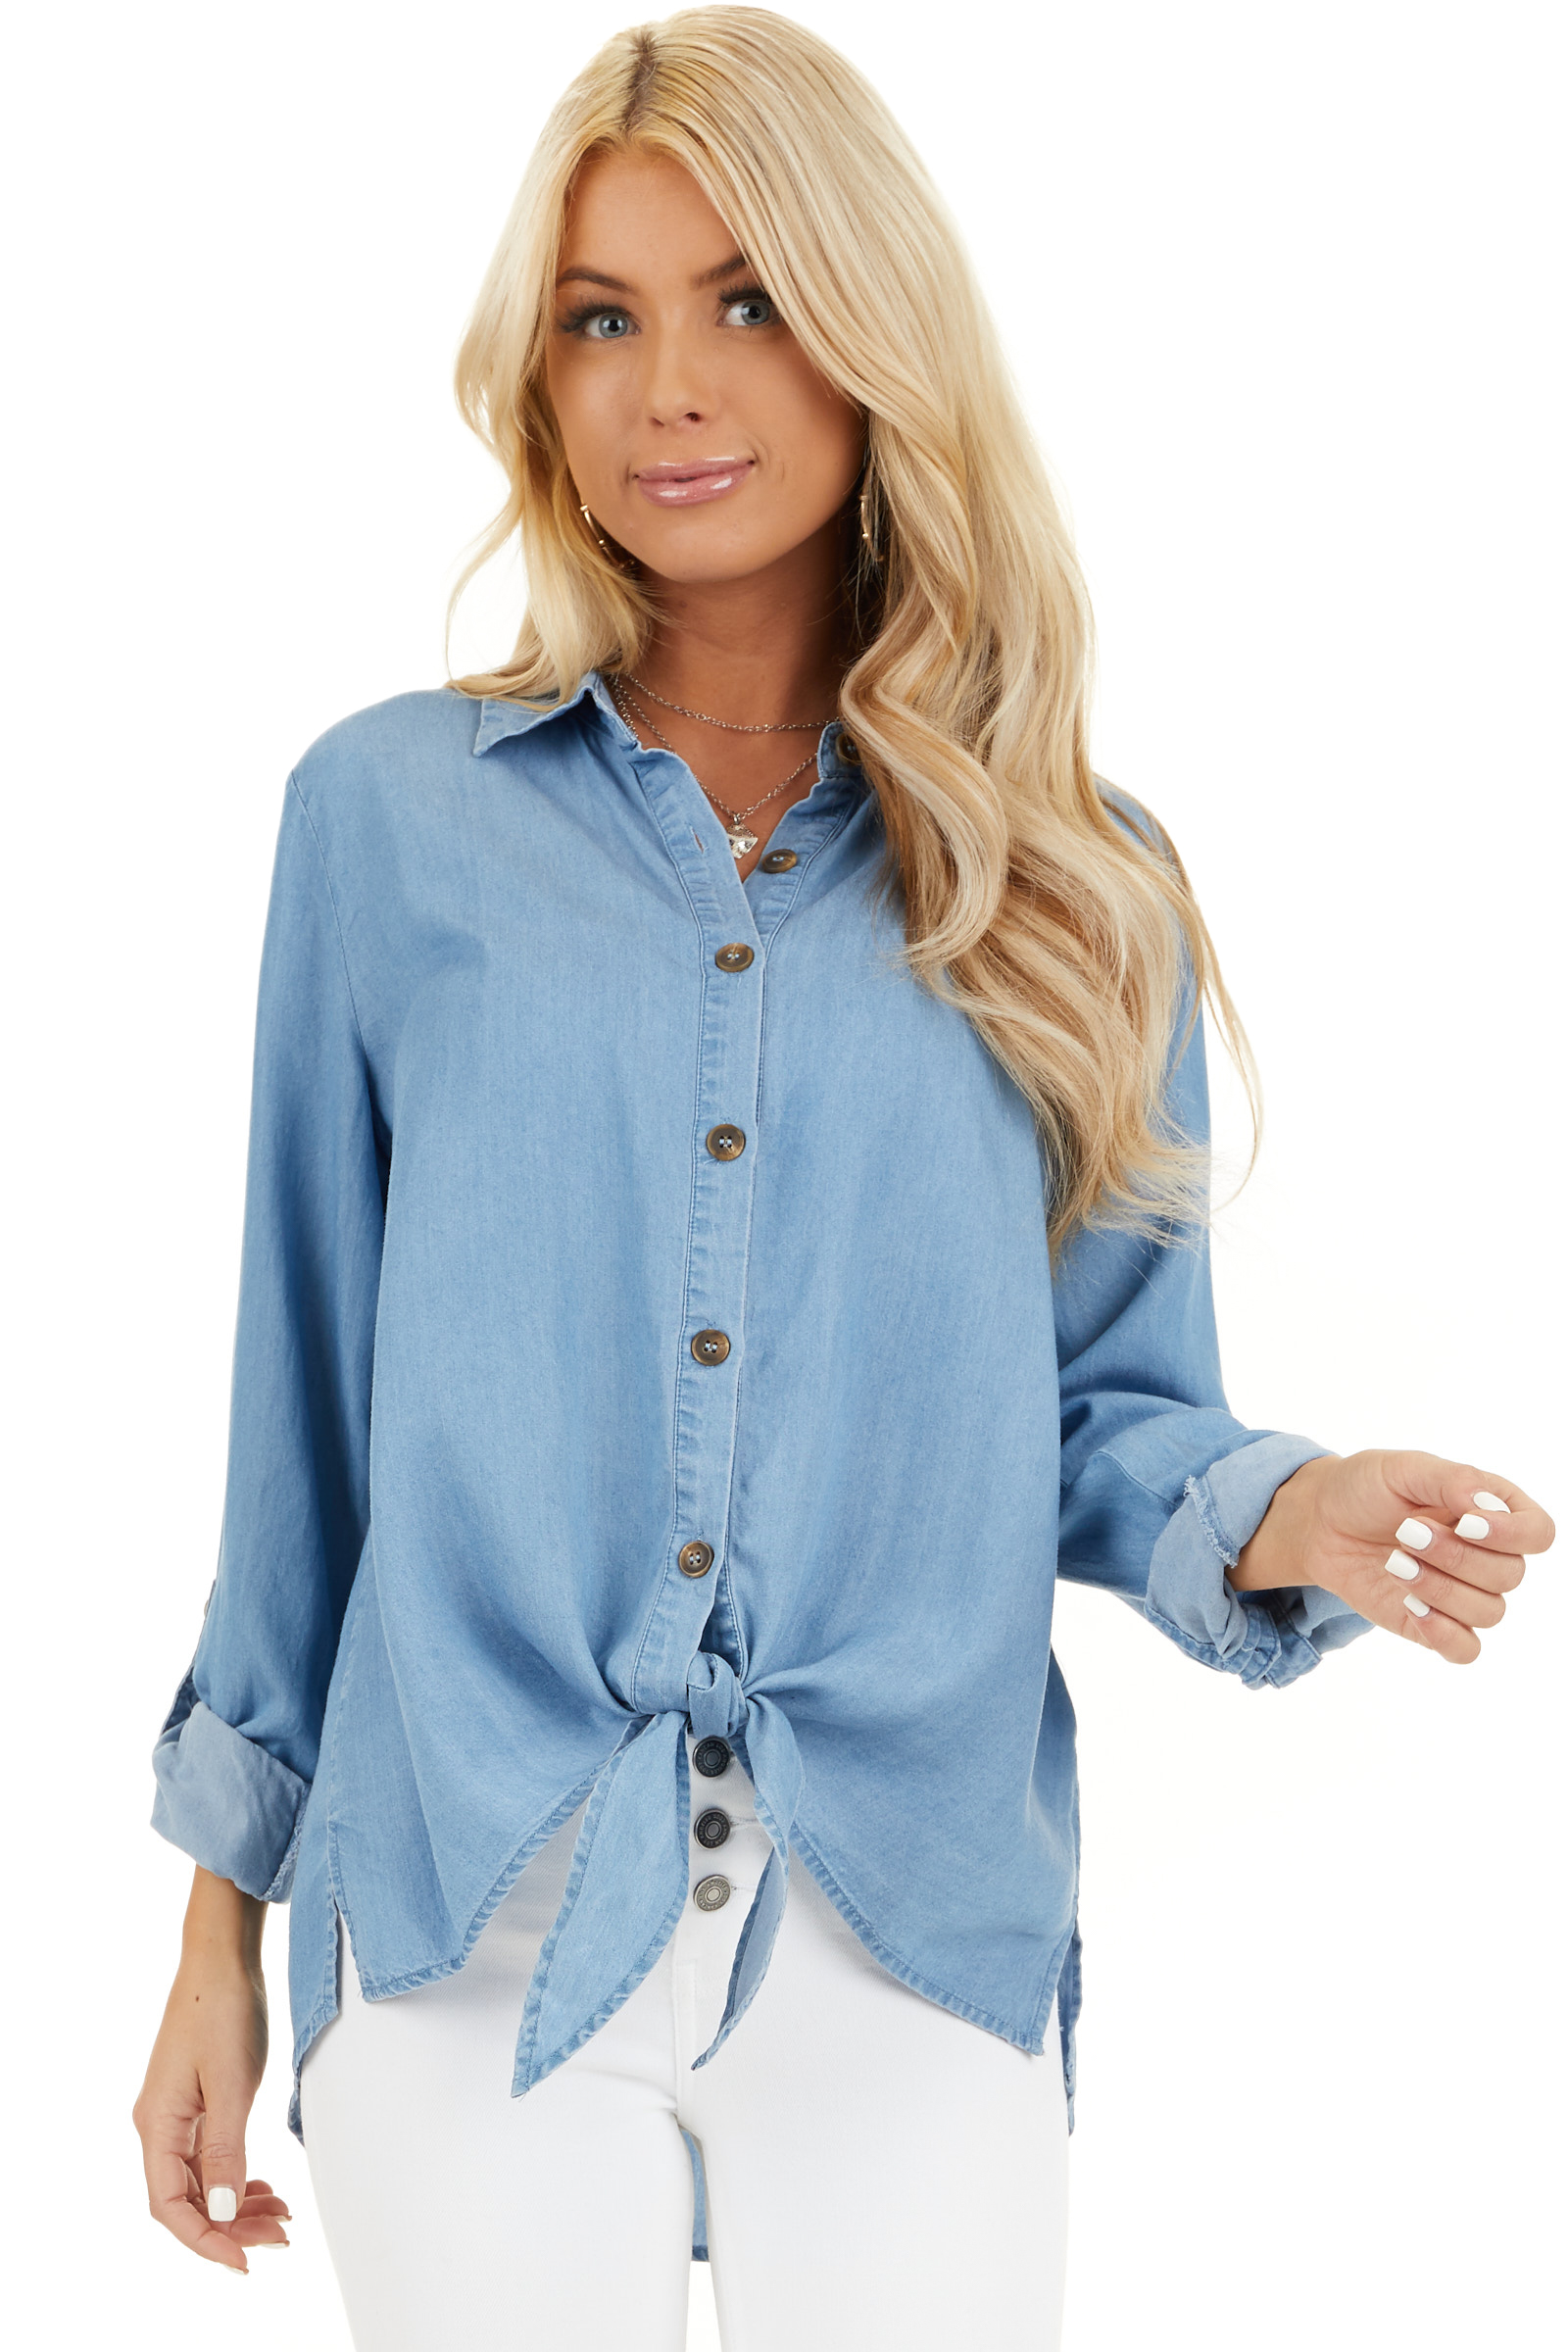 Medium Wash Chambray Button Up Top with Front Tie Detail closeup